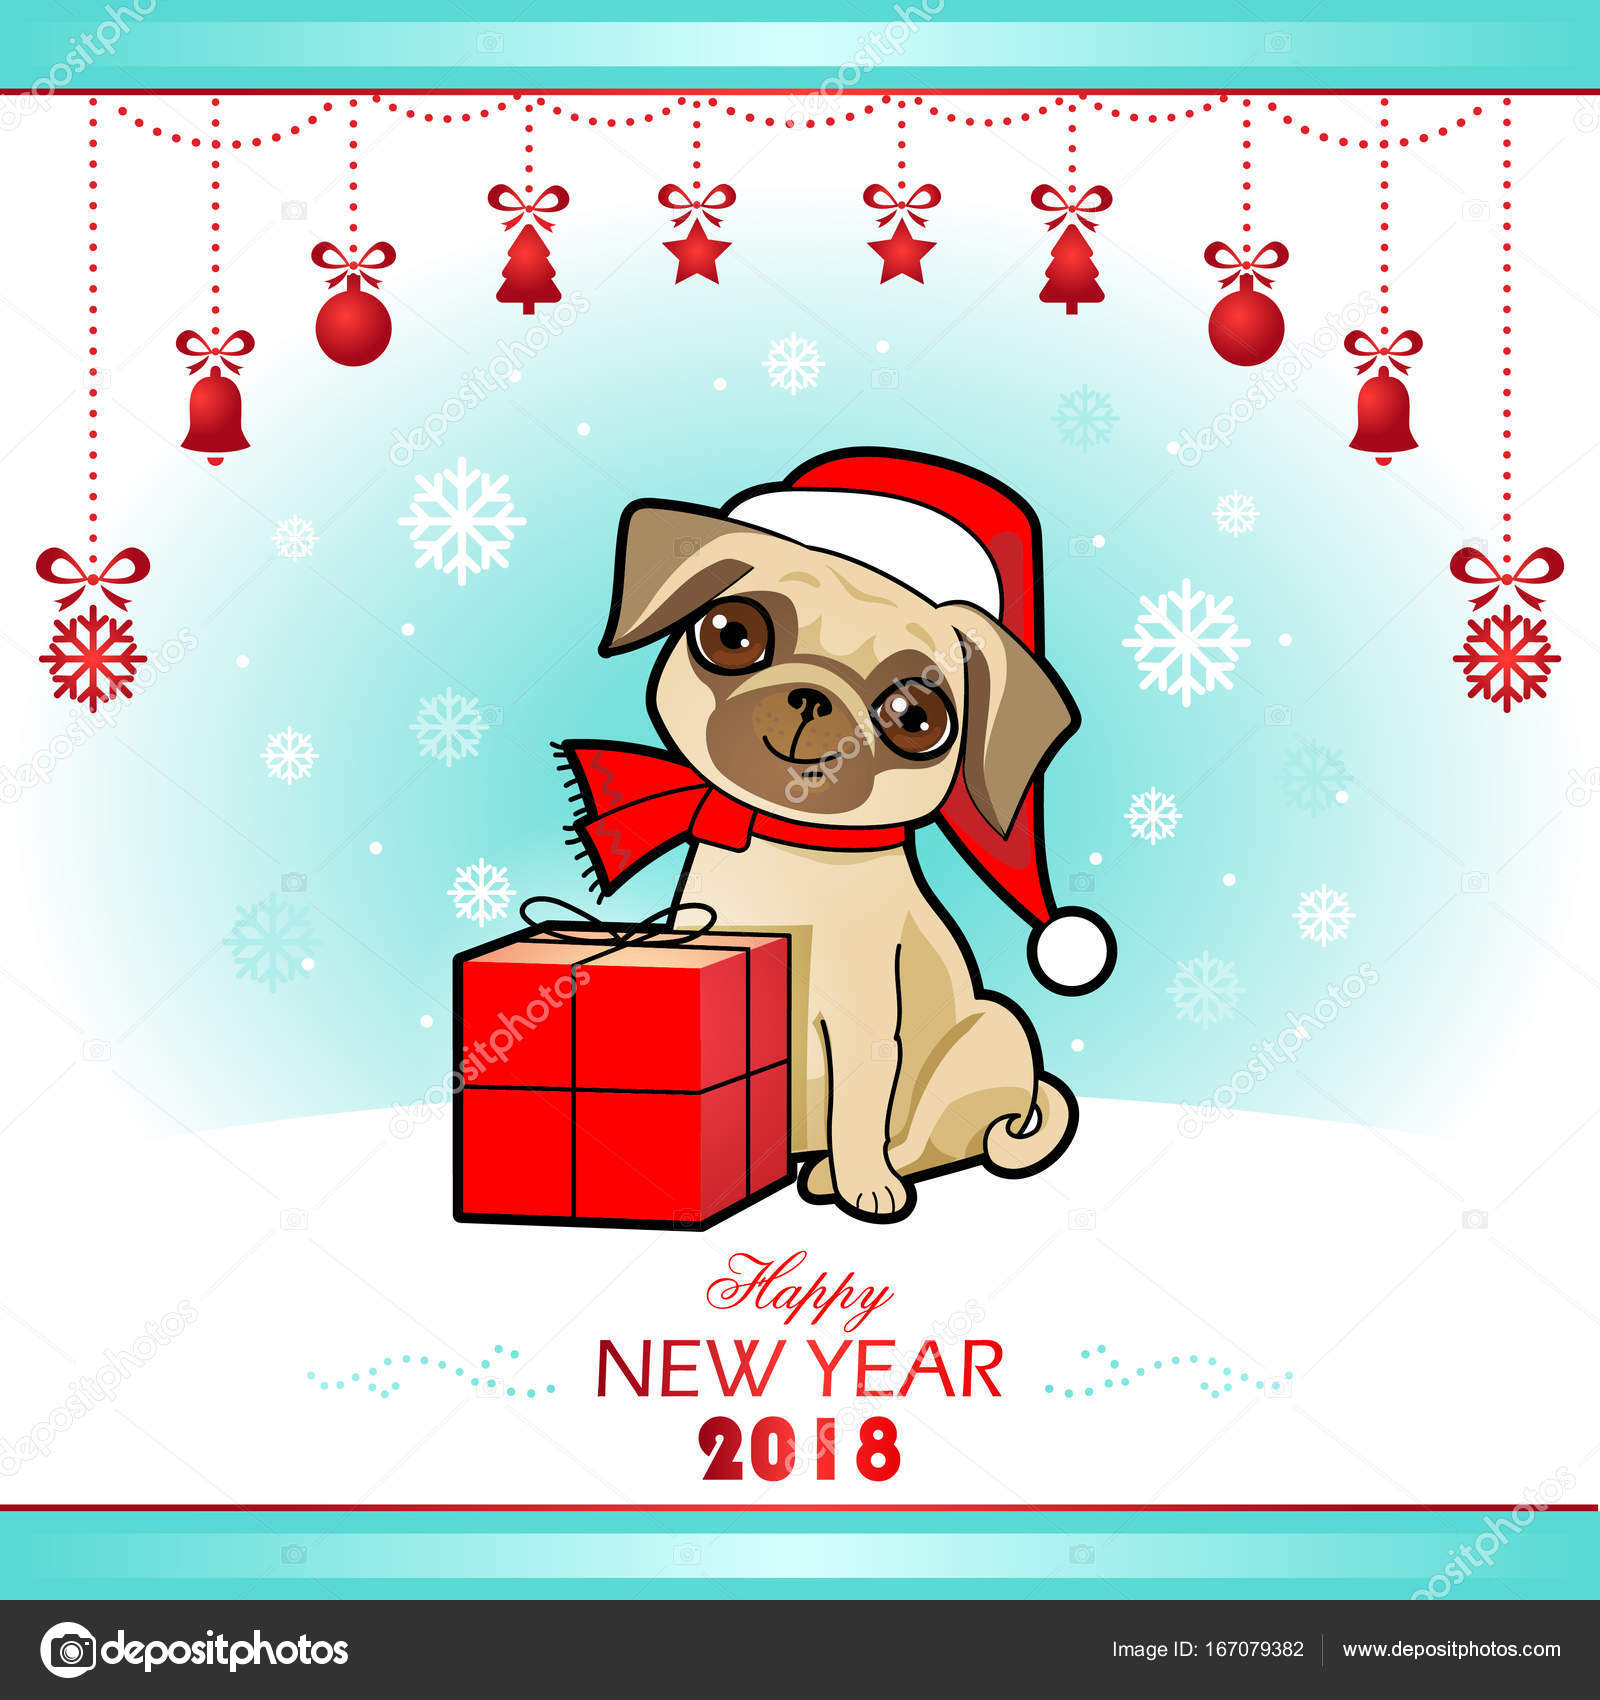 christmas and new year card with cute dog christmas design greeting card invitation